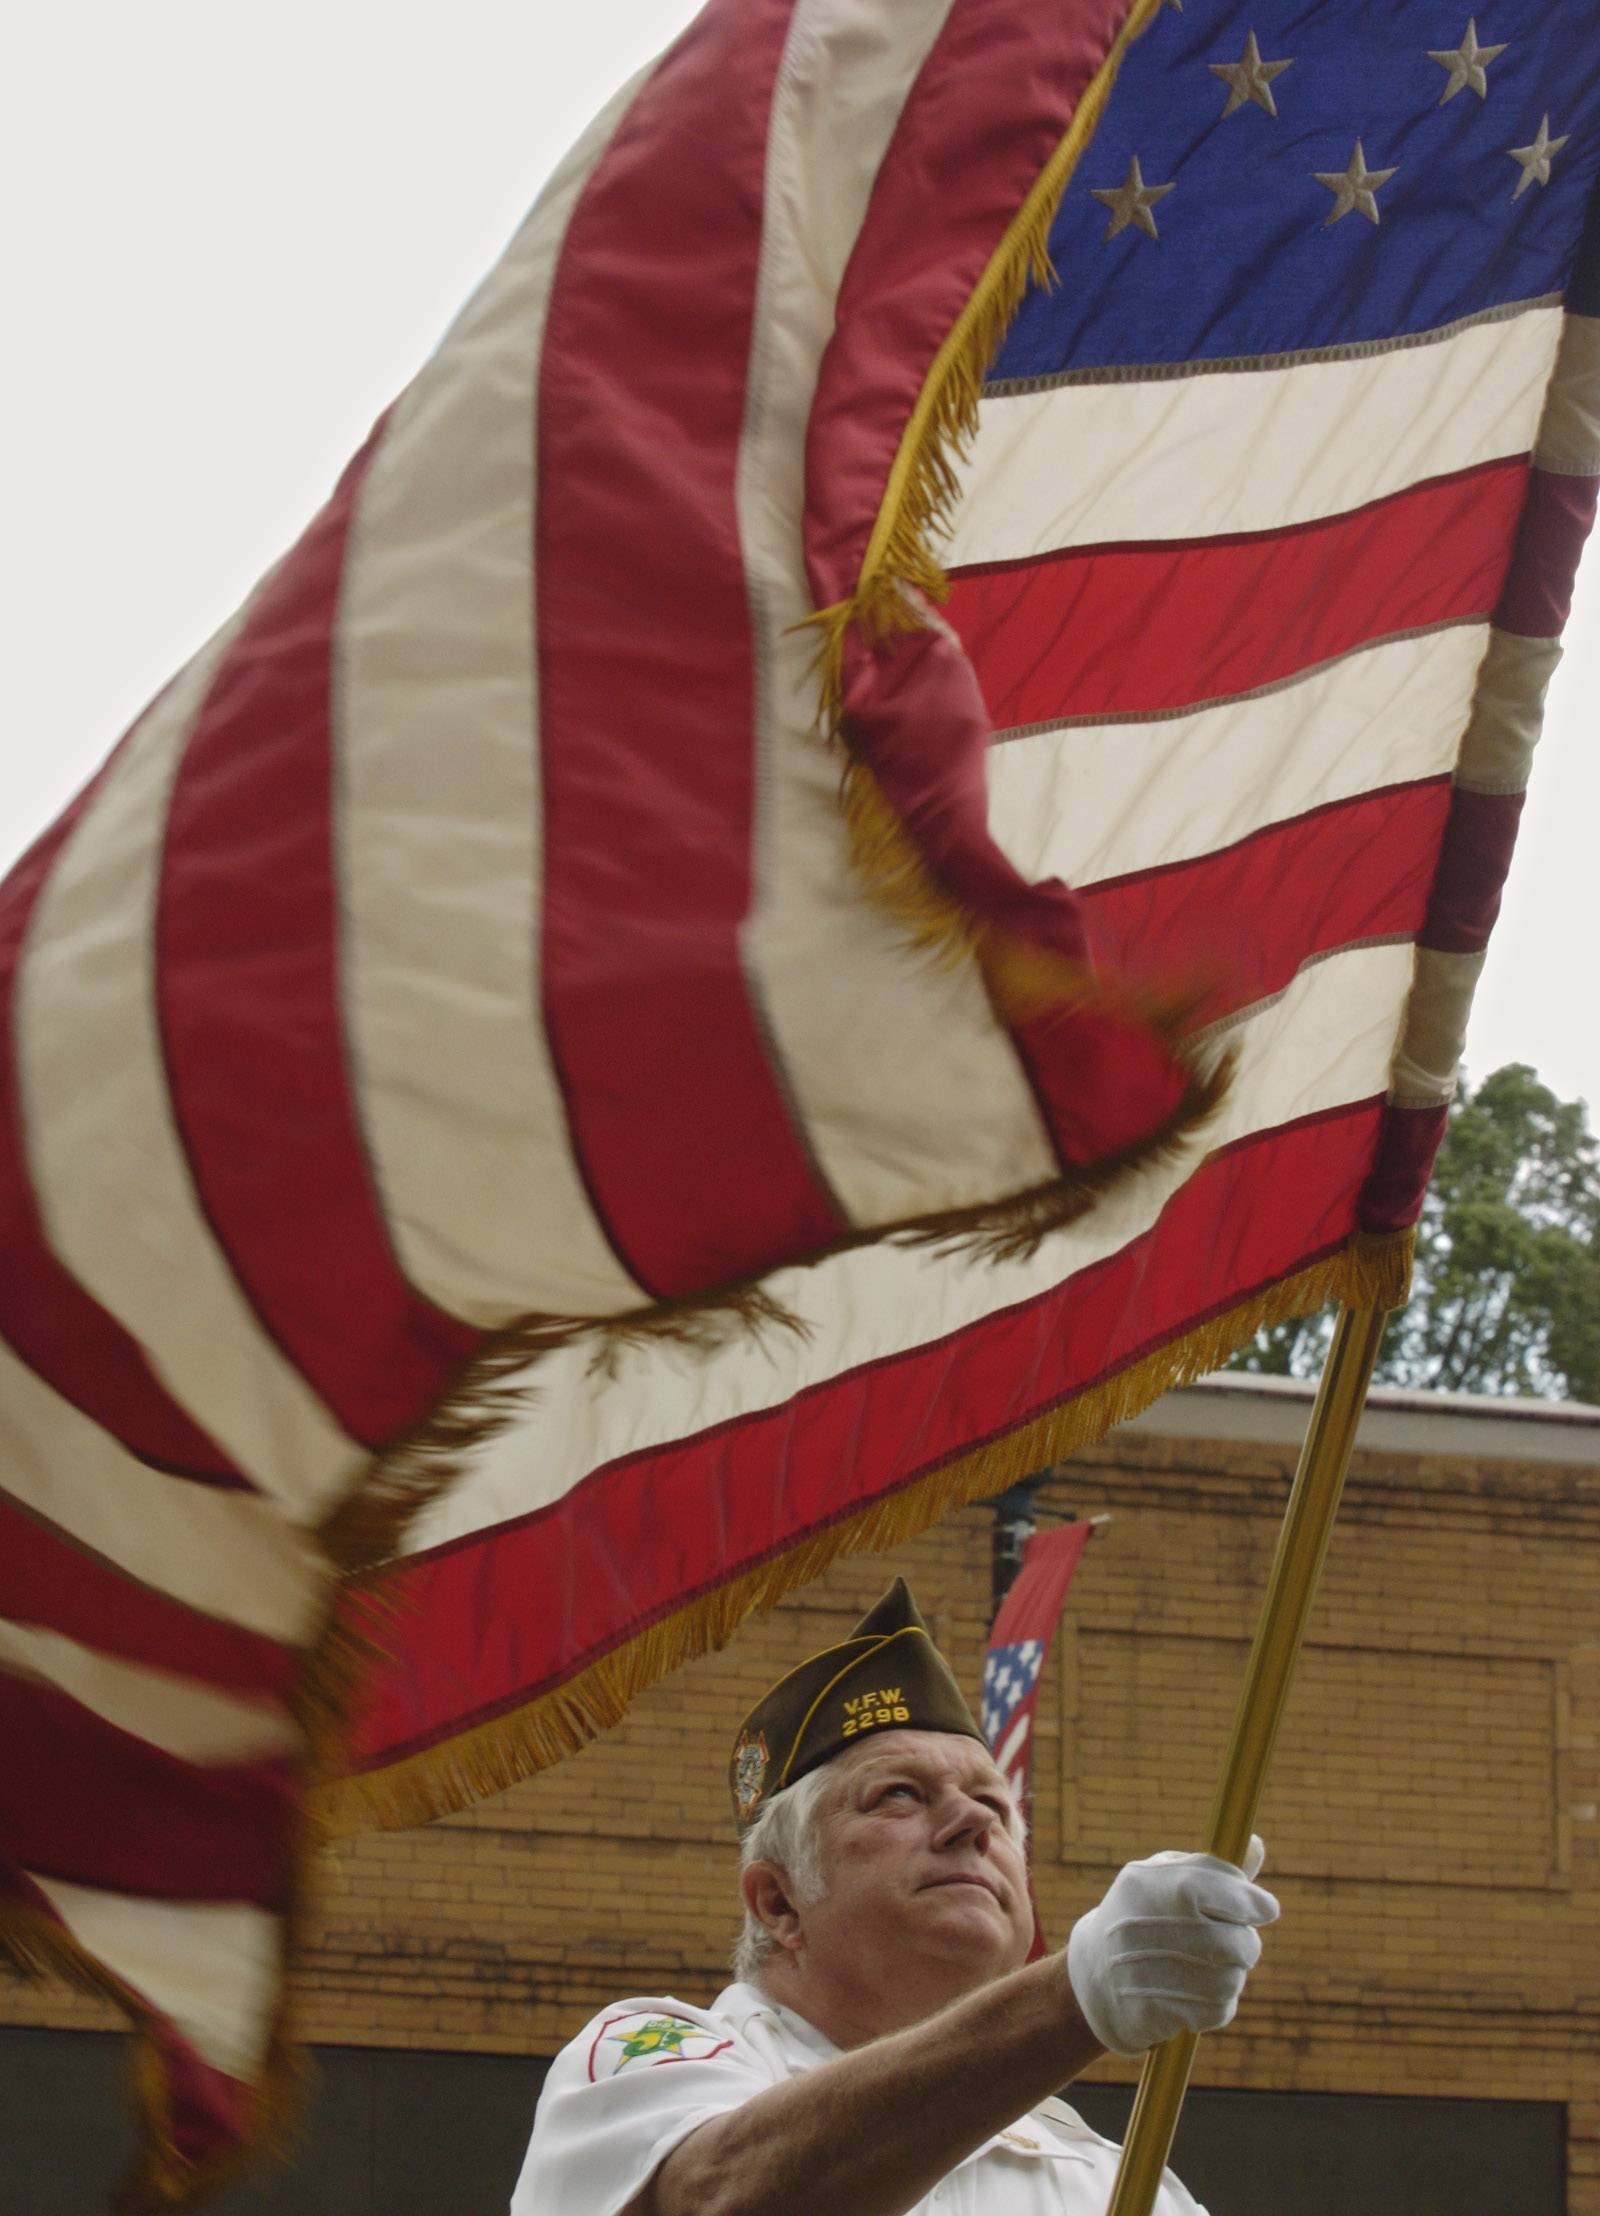 Larry Fettes of Veterans of Foreign Wars Post 2298 in West Dundee, holds a billowing American flag during a previous Flag Day ceremony in East Dundee.